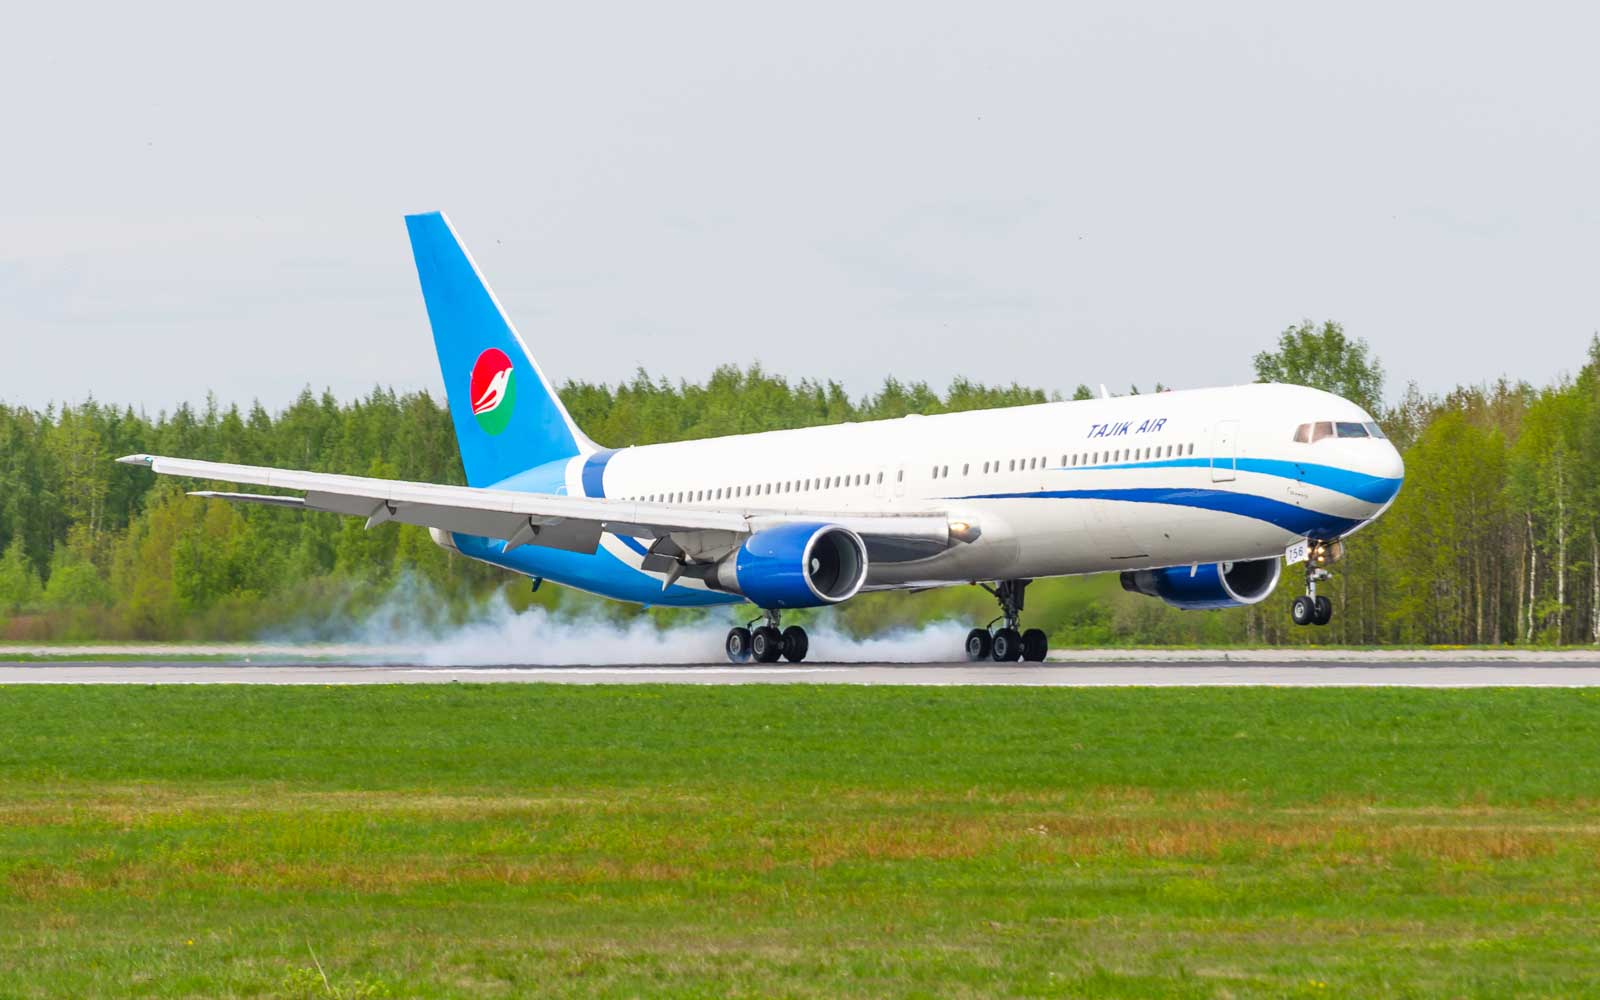 8. Tajik Air